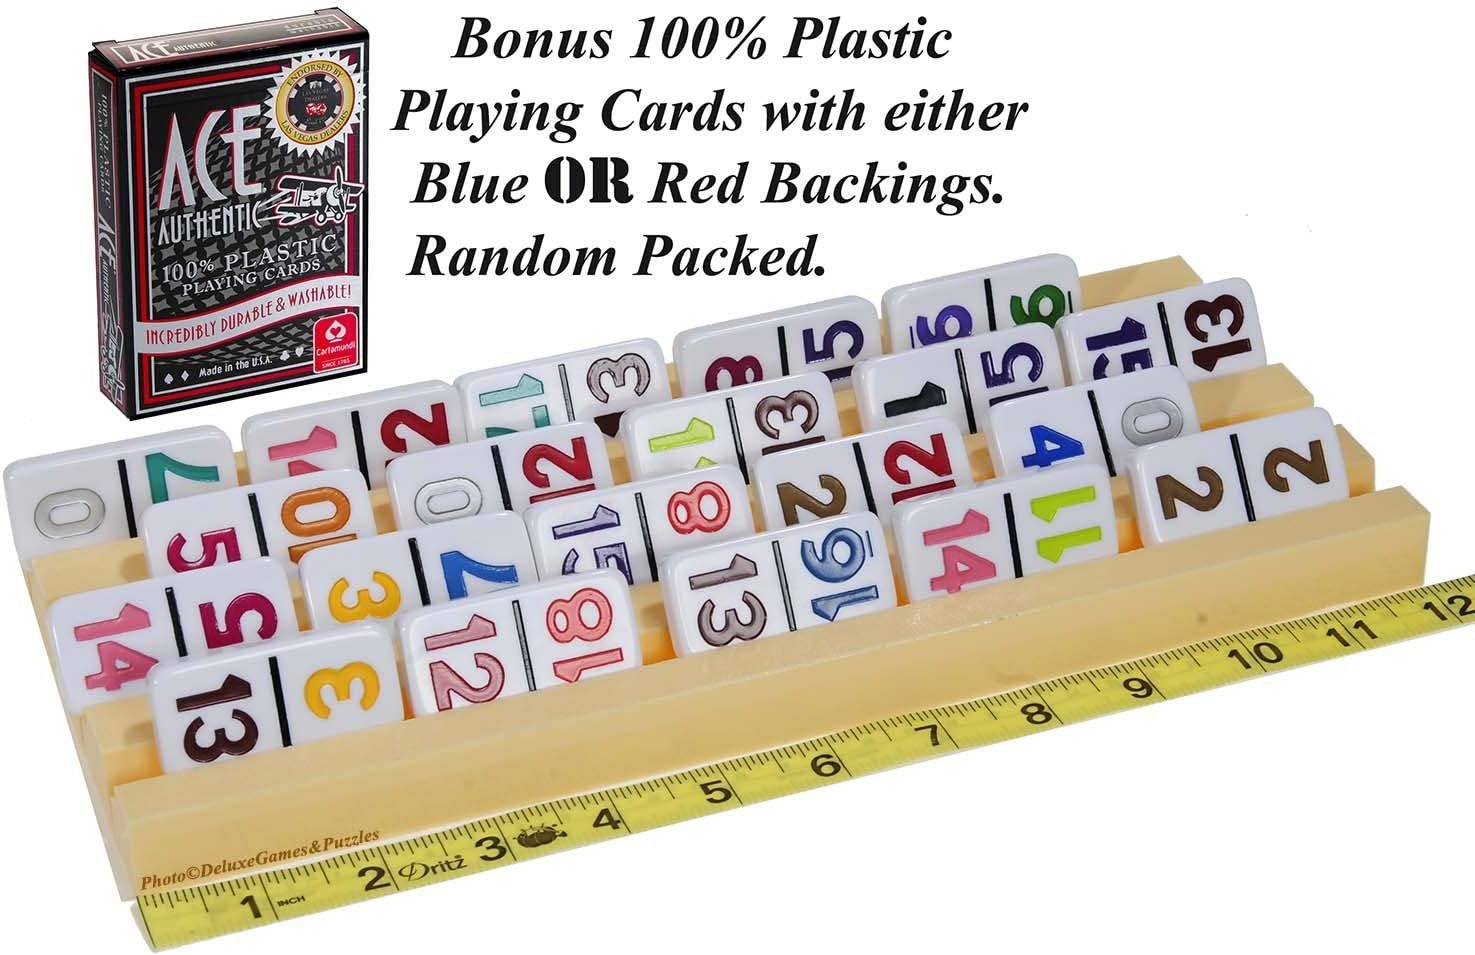 Plastic Trays Racks for Dominoes OR Playing Card /_ Dual Use /_ Set of 4 /_ Bonus 1 Deck of Ace 100/% High Quality Plastic Playing Cards Deluxe Games and Puzzles Random backing color of Red or Blue